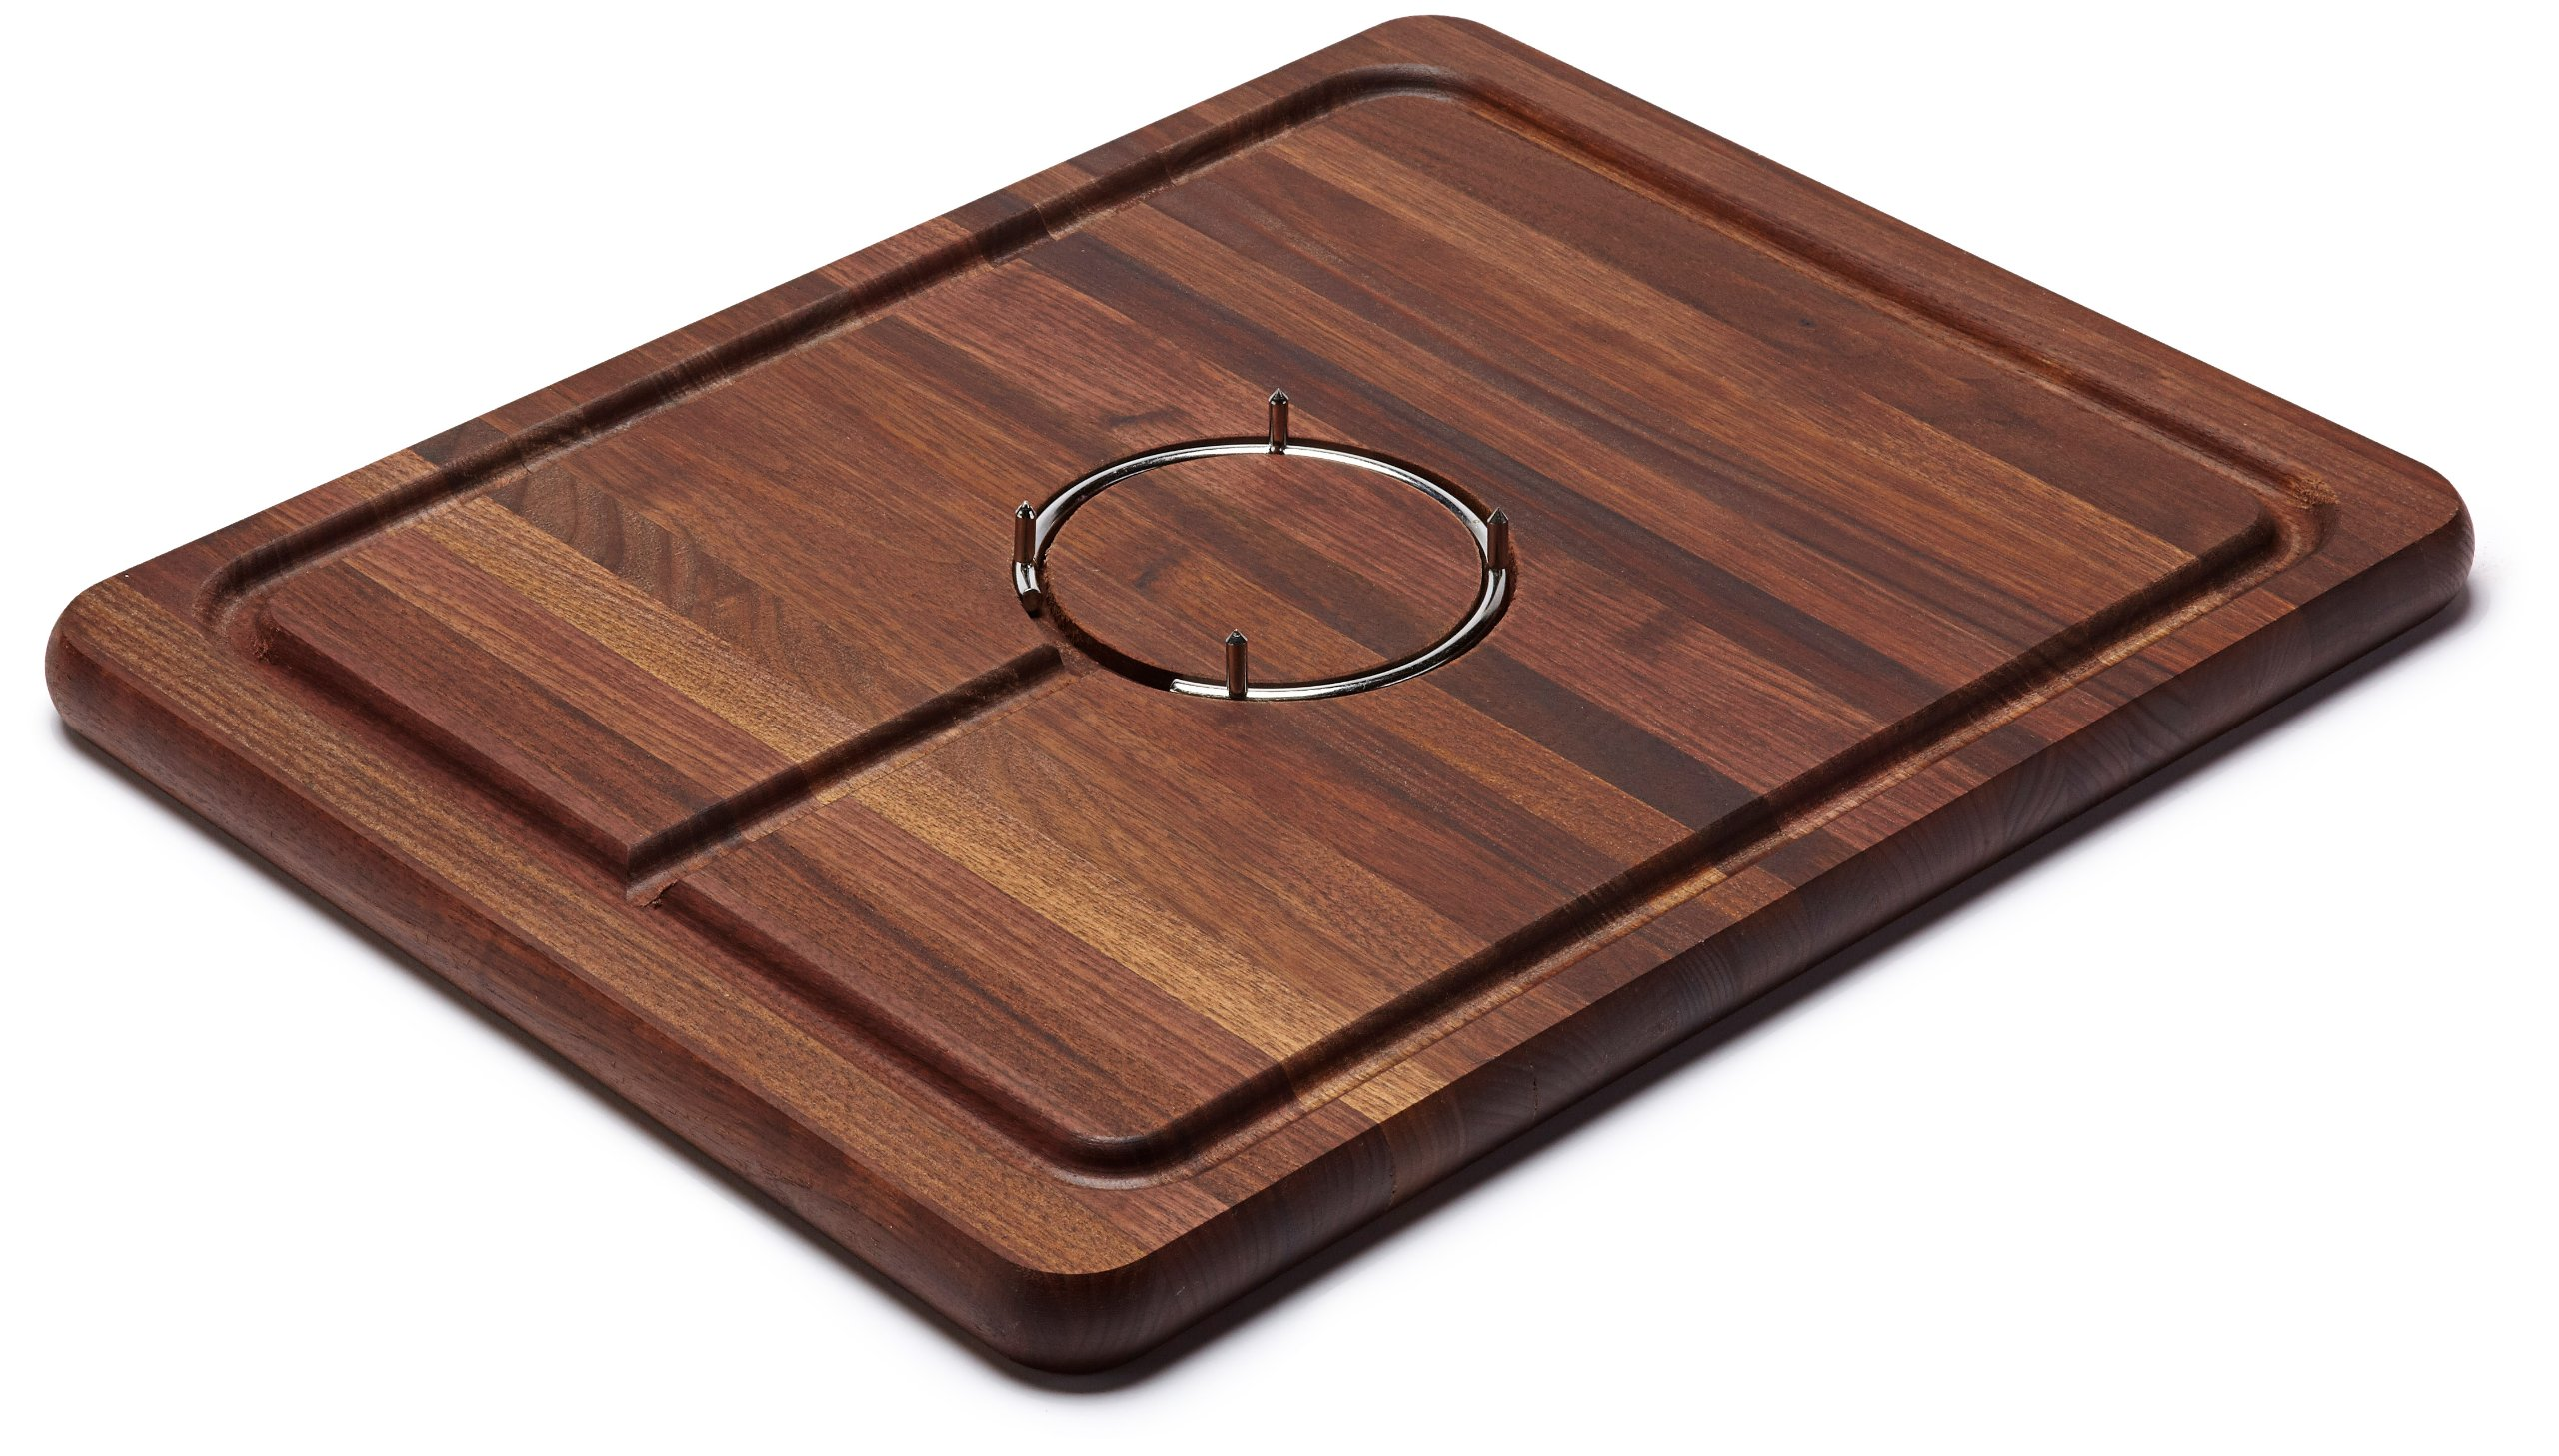 Snow River USA 7V03085 Hardwood Walnut Carving Board Stainless Steel Gripping Ring and Juice Well, 14'' x 18'' x 1'' by Snow River